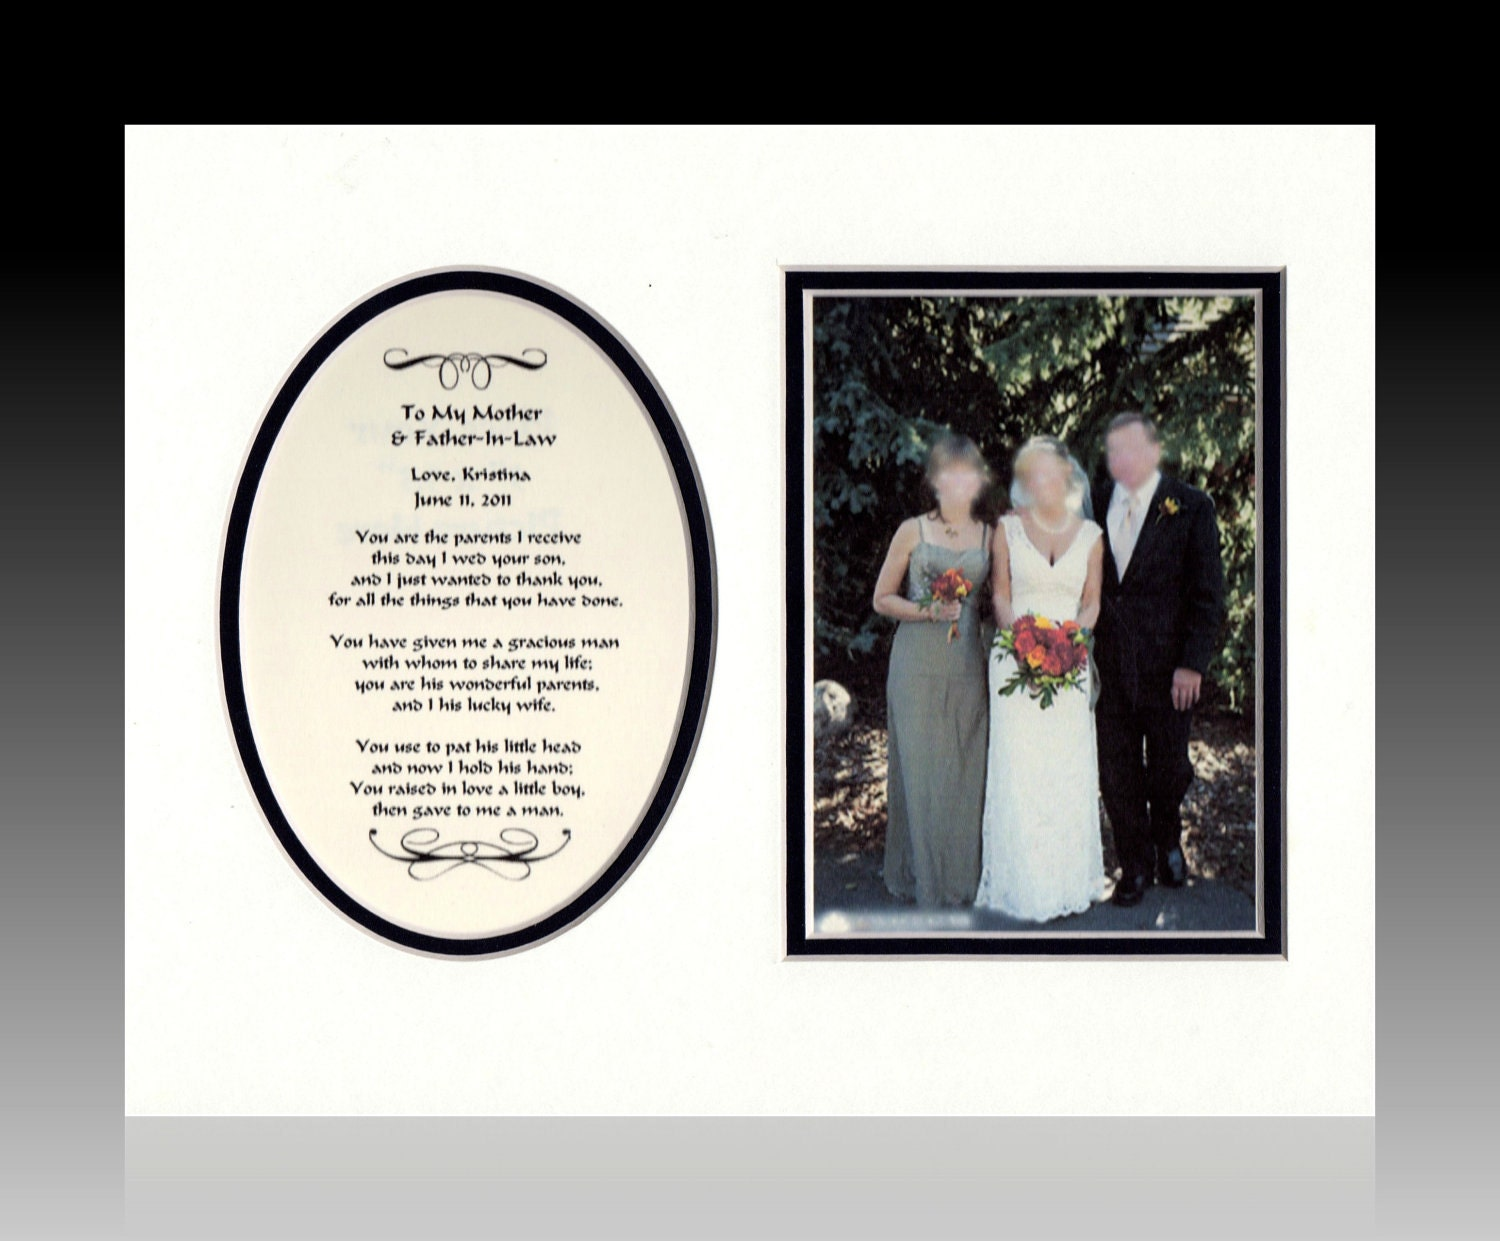 Father In Law Wedding Gifts: Wedding To My Mother And Father-In-Law Personalized Gift